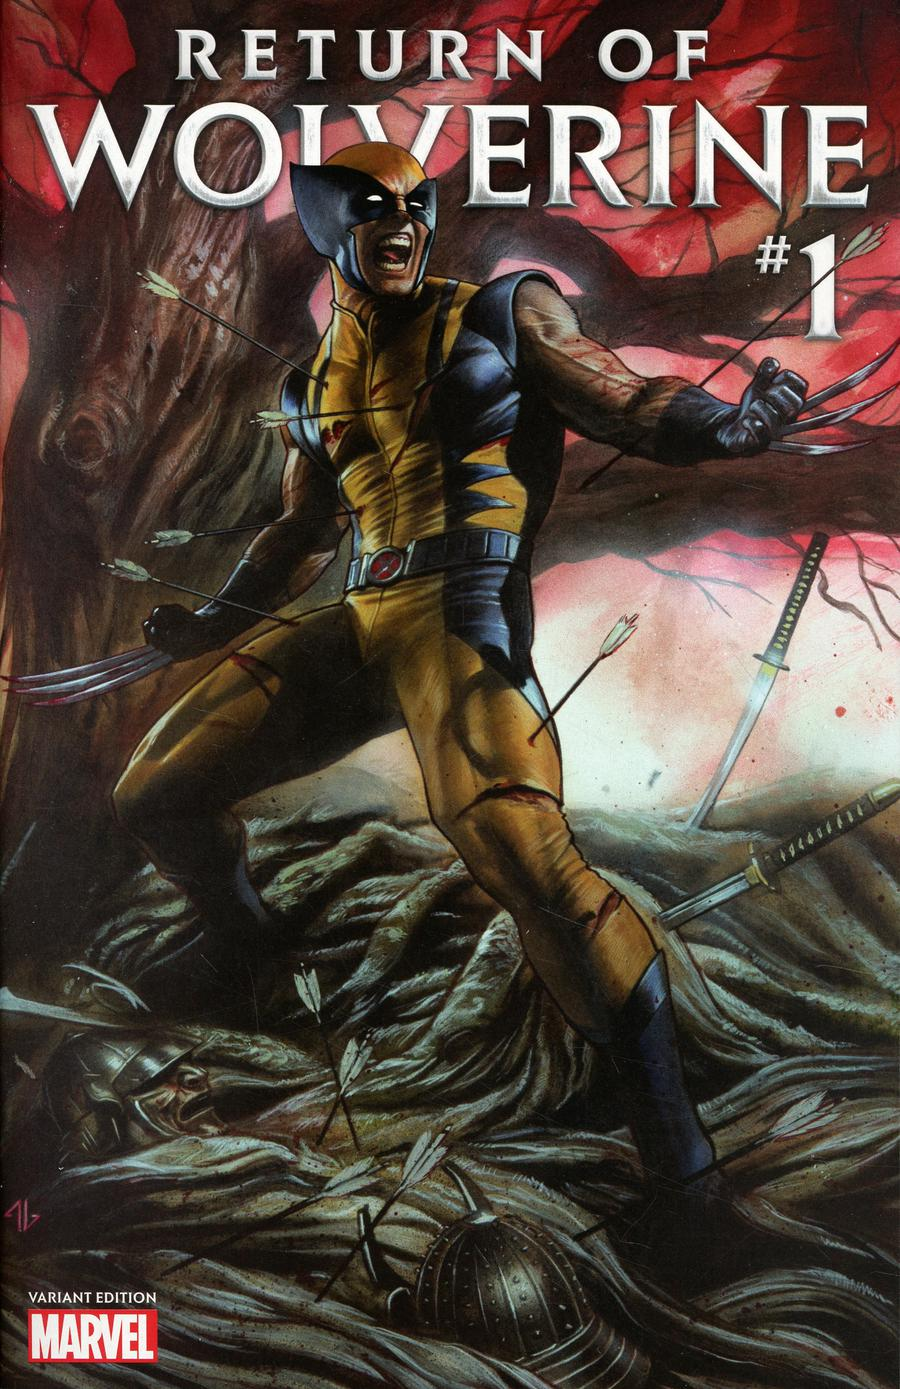 Return Of Wolverine #1 Cover Z-I Adi Granov Convention Exclusive Variant Cover